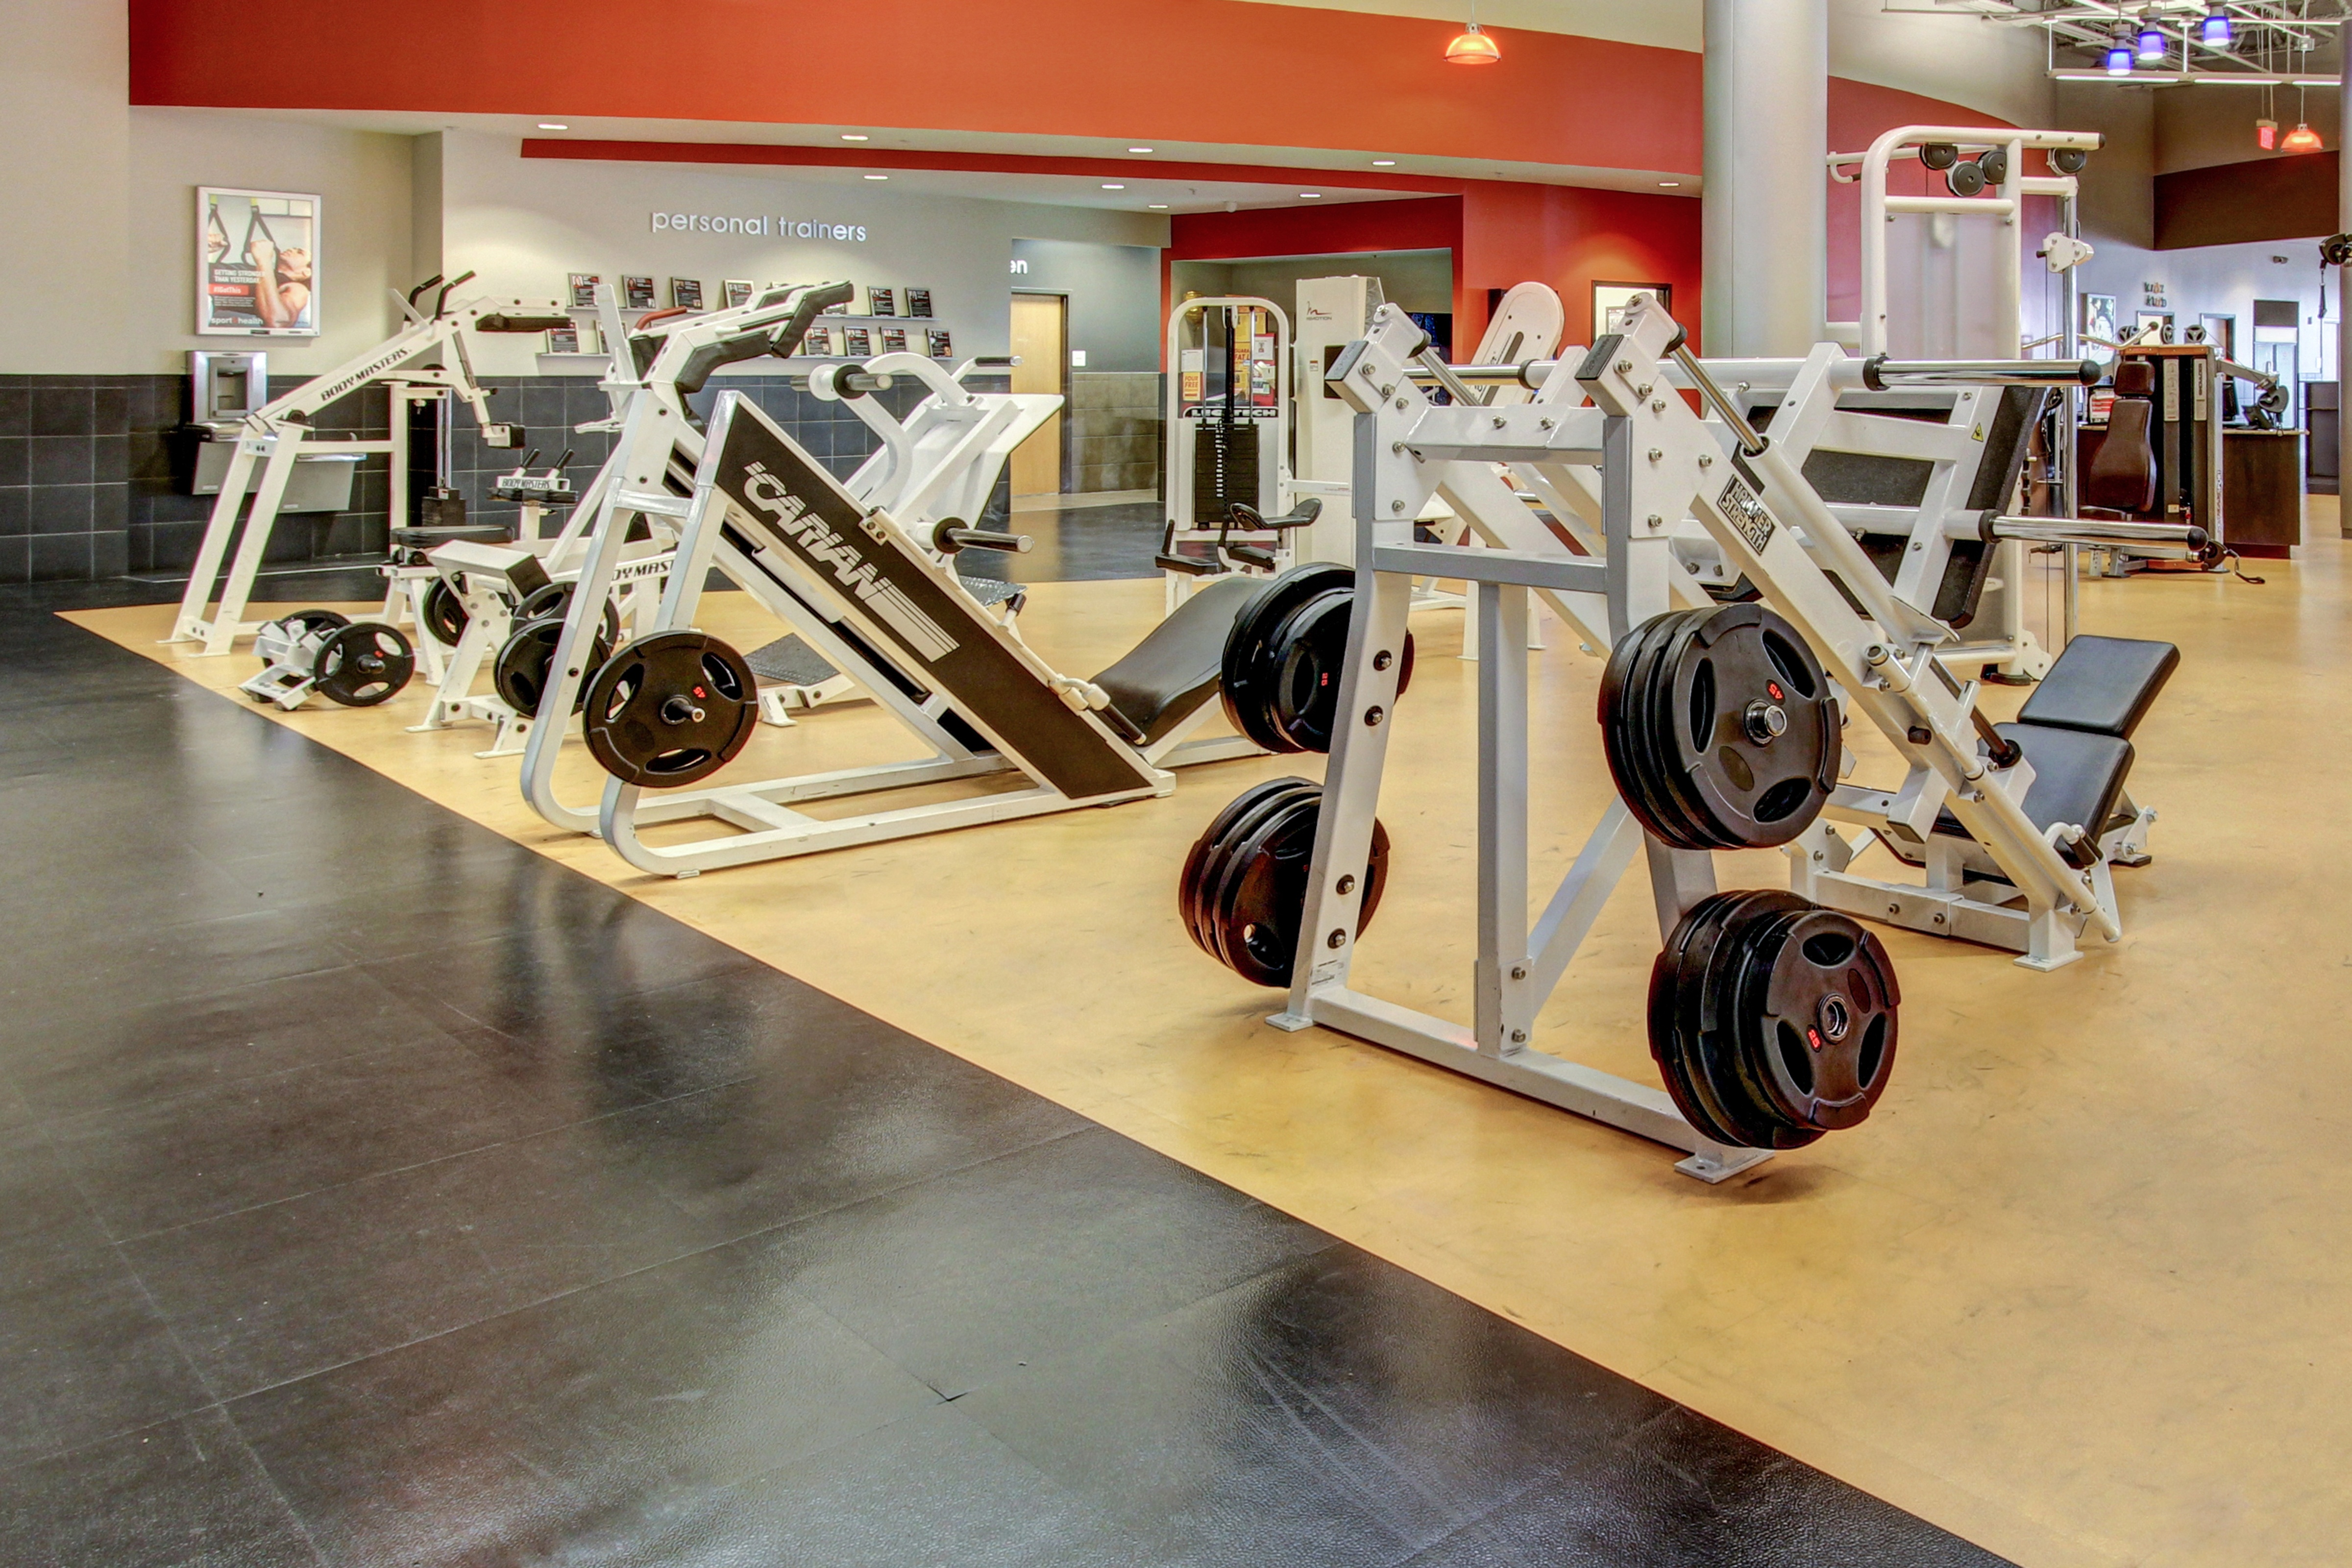 Stafford Leg Press Machines